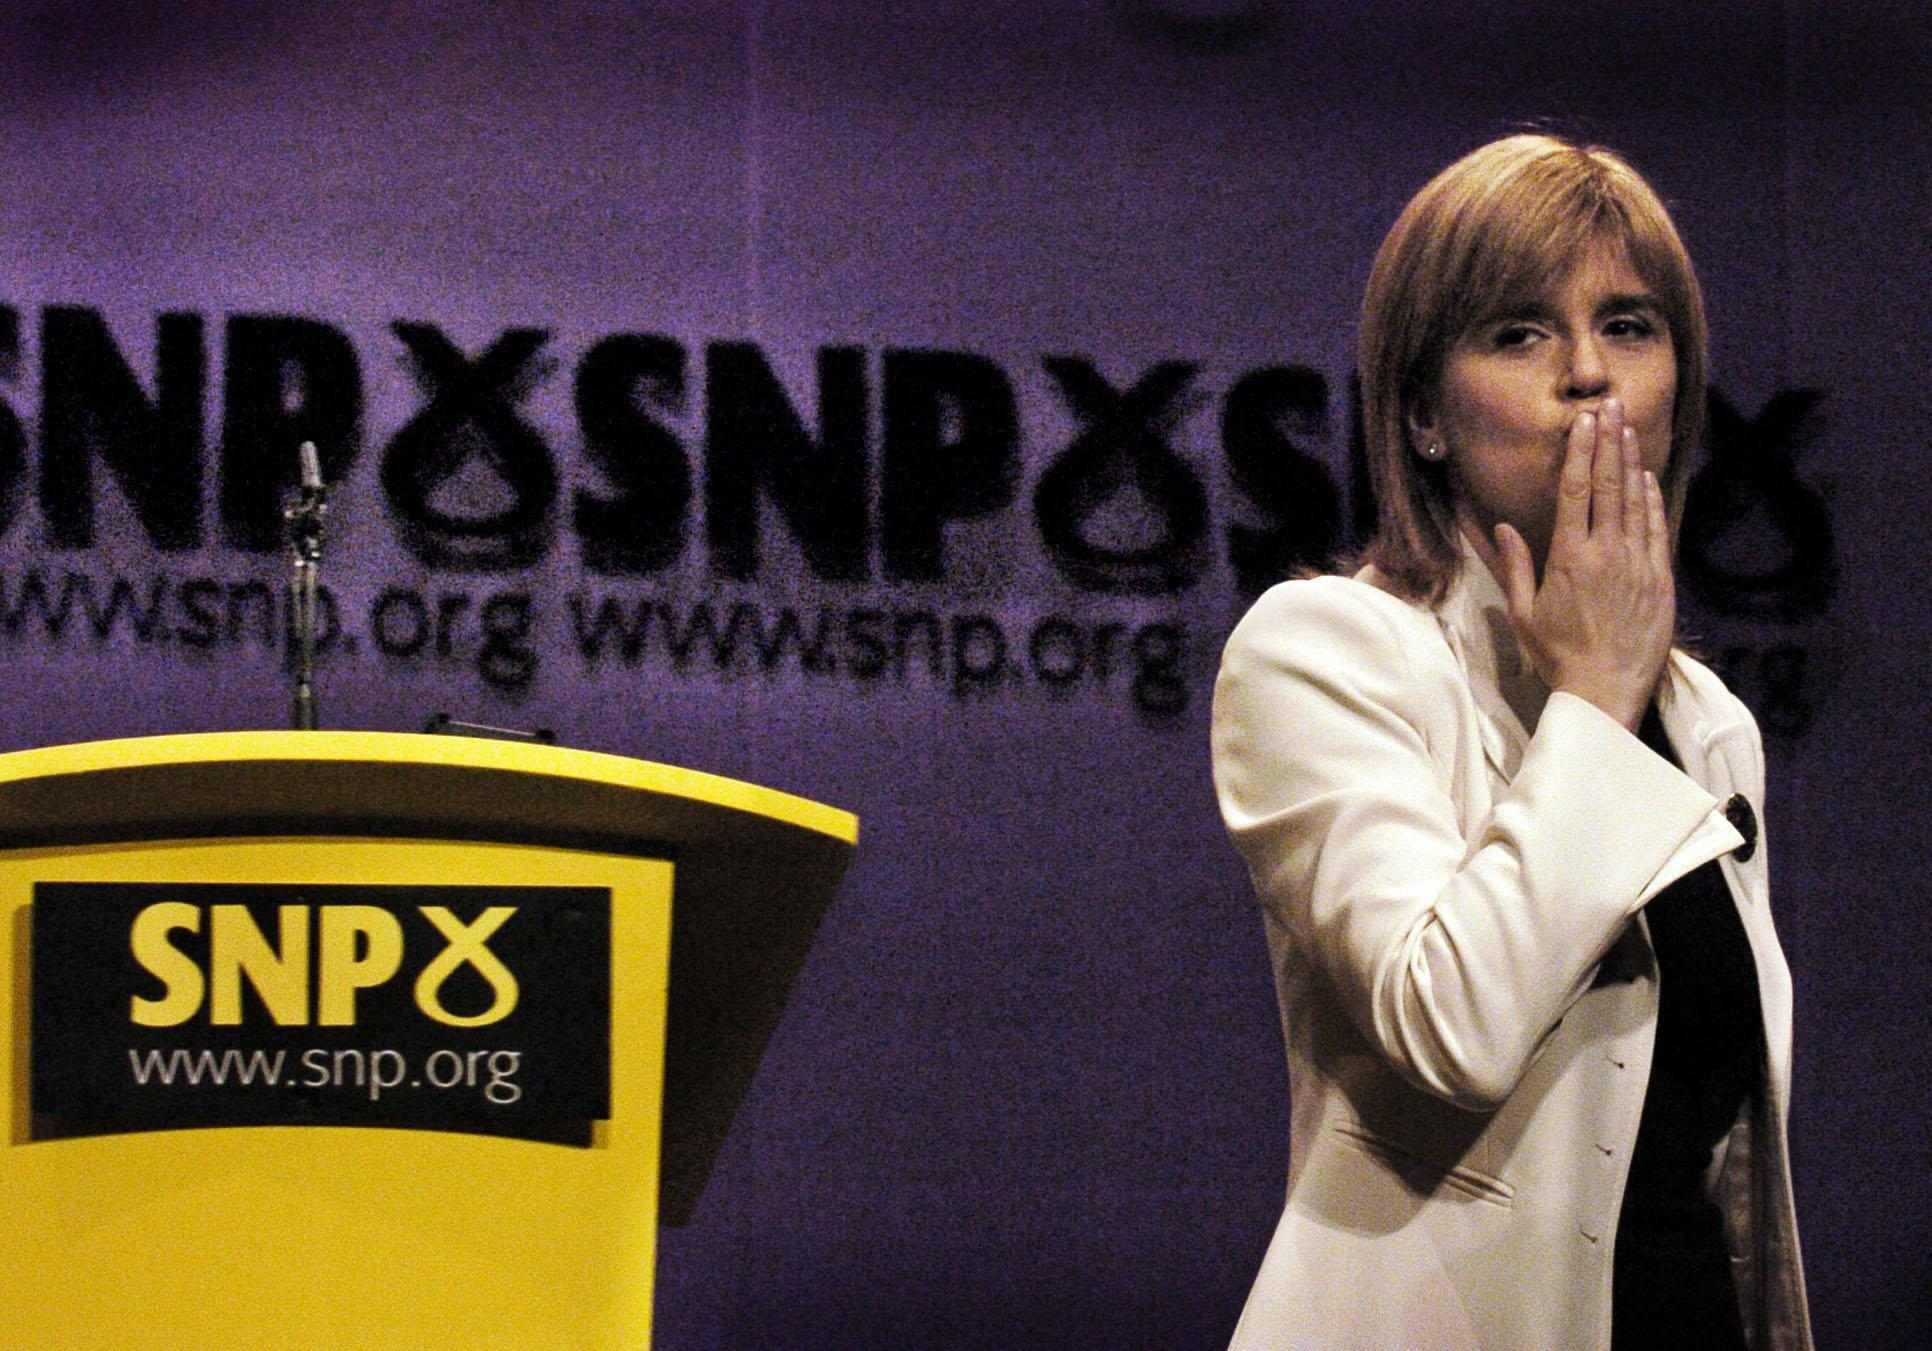 Deputy Leader of the Scottish National Party Nicola Sturgeon thanks the audience after giving her speech at the party conference in Inverness, Scotland.